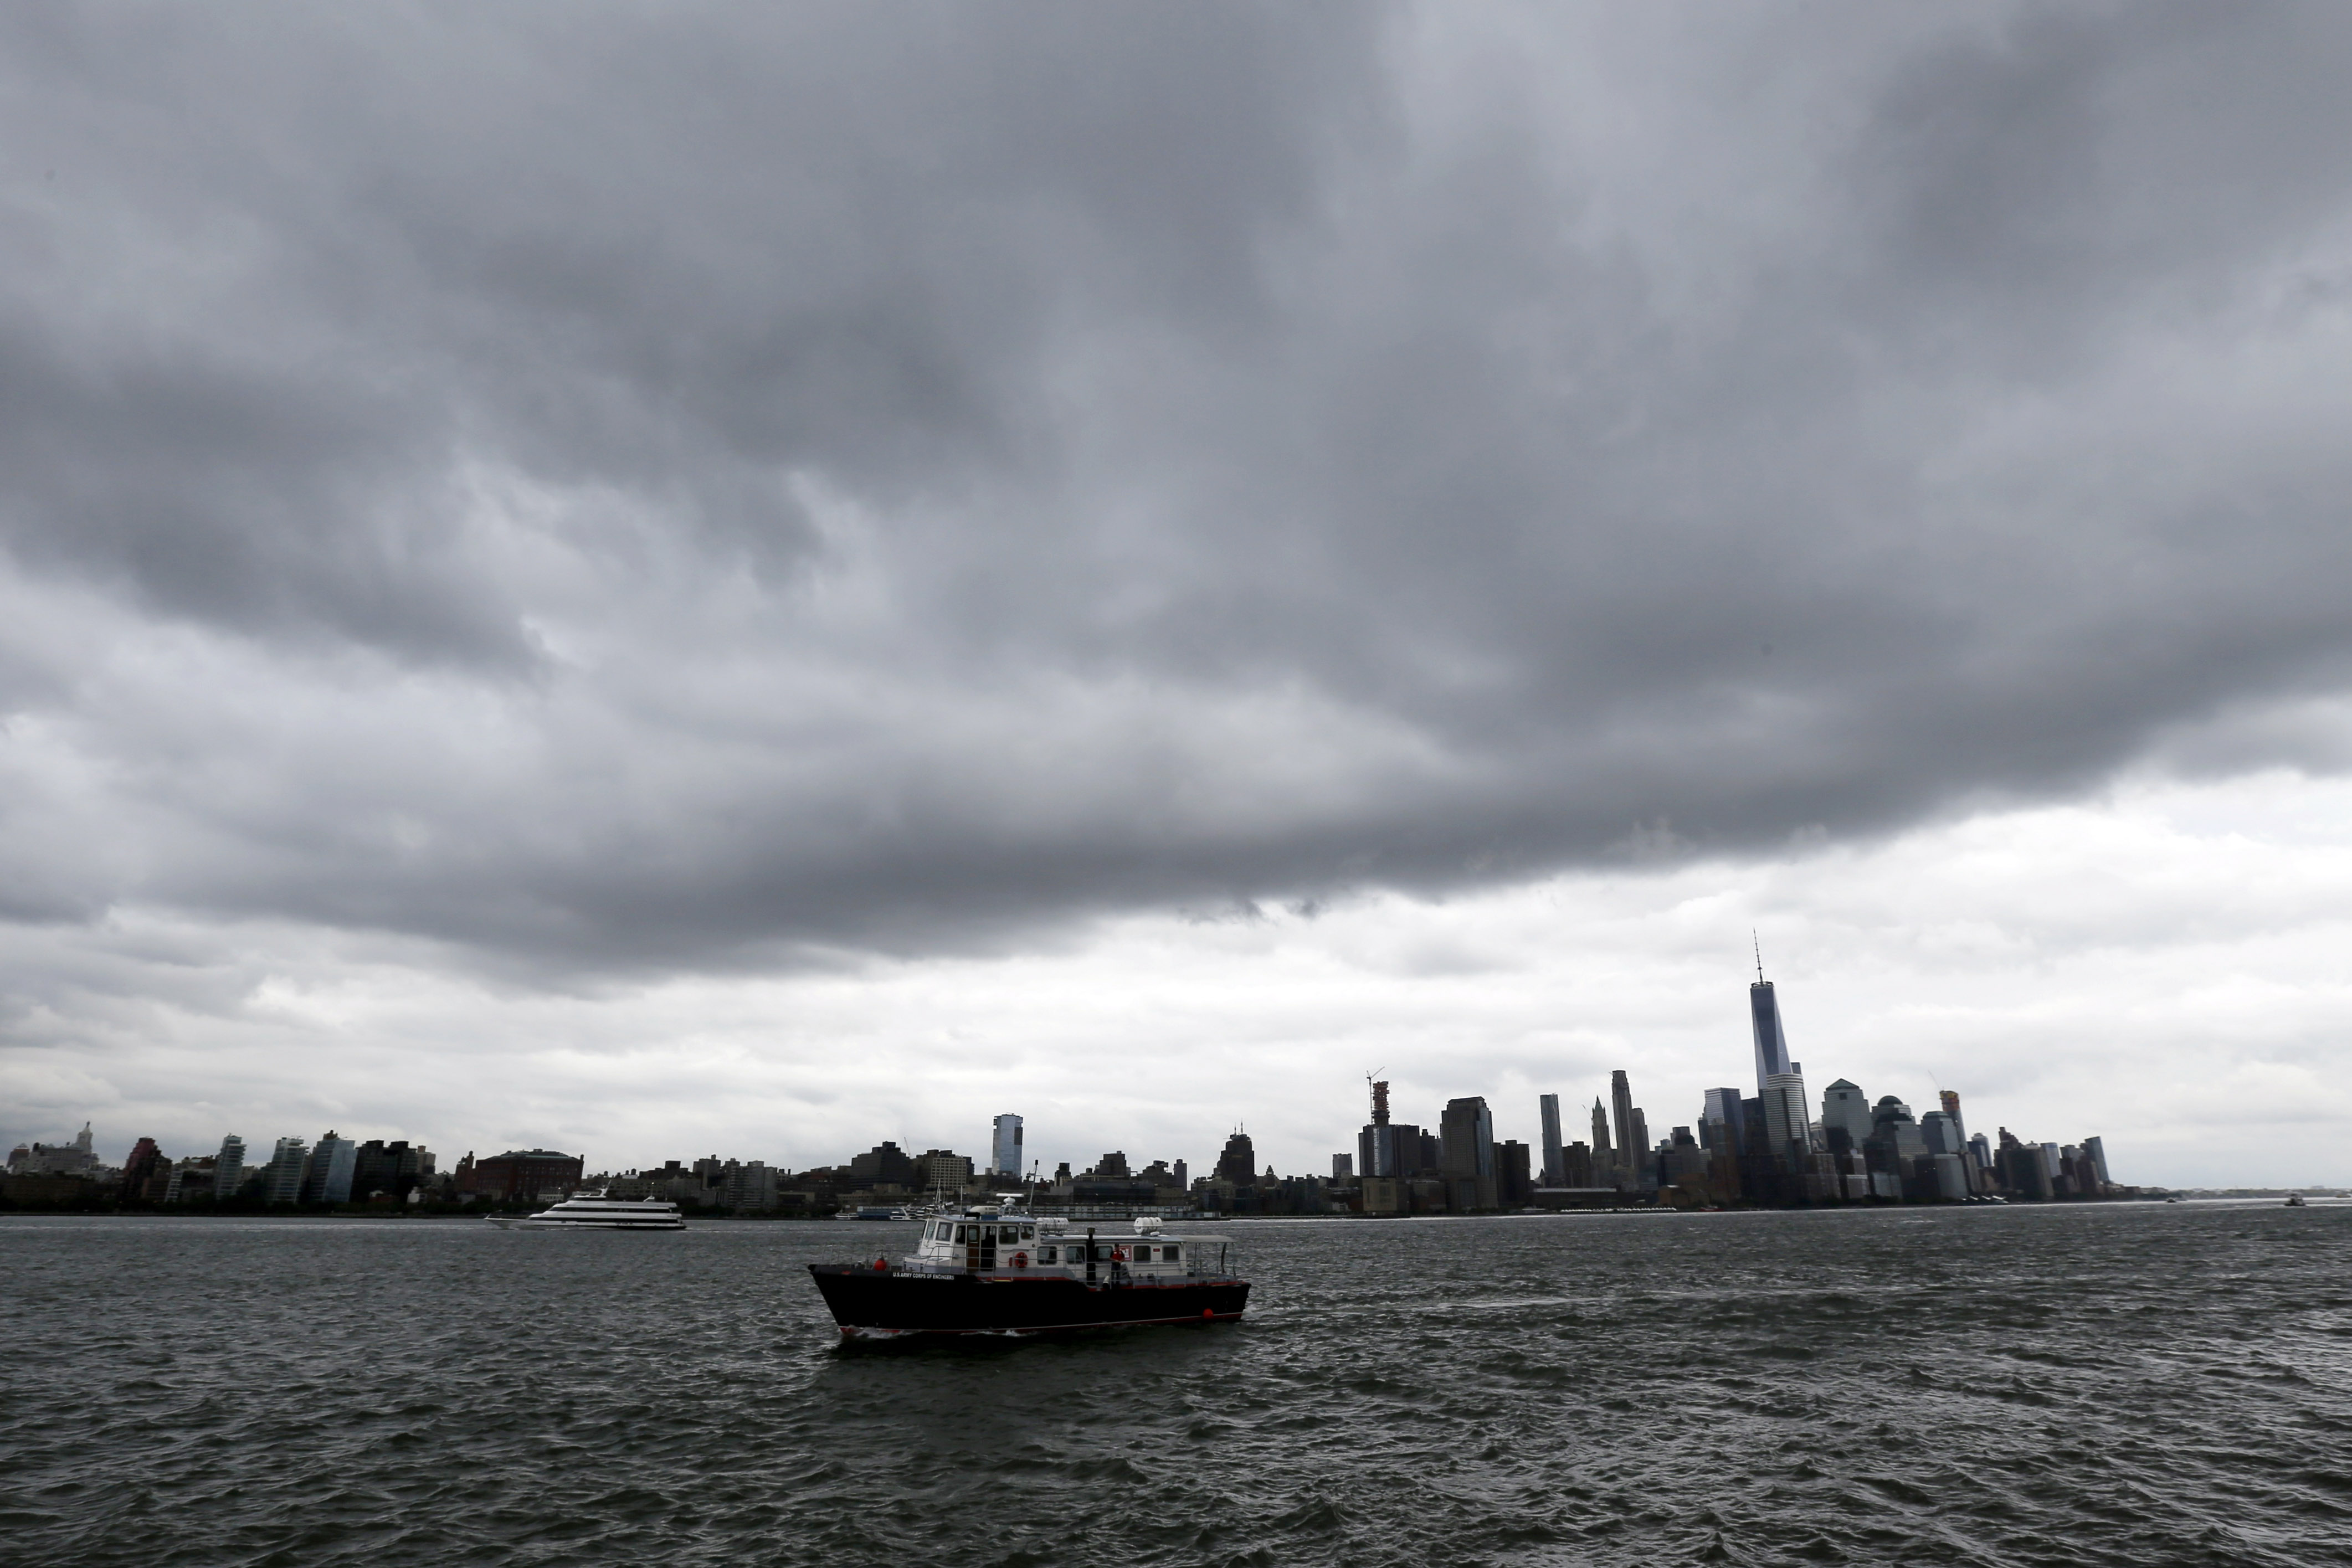 A boat passes Pier A Park on the Hudson River with the New York skyline in the background, Sept. 30, 2015. Officials along the Eastern Seaboard are taking precautions for the rest of the week as forecasters closely follow Hurricane Joaquin.